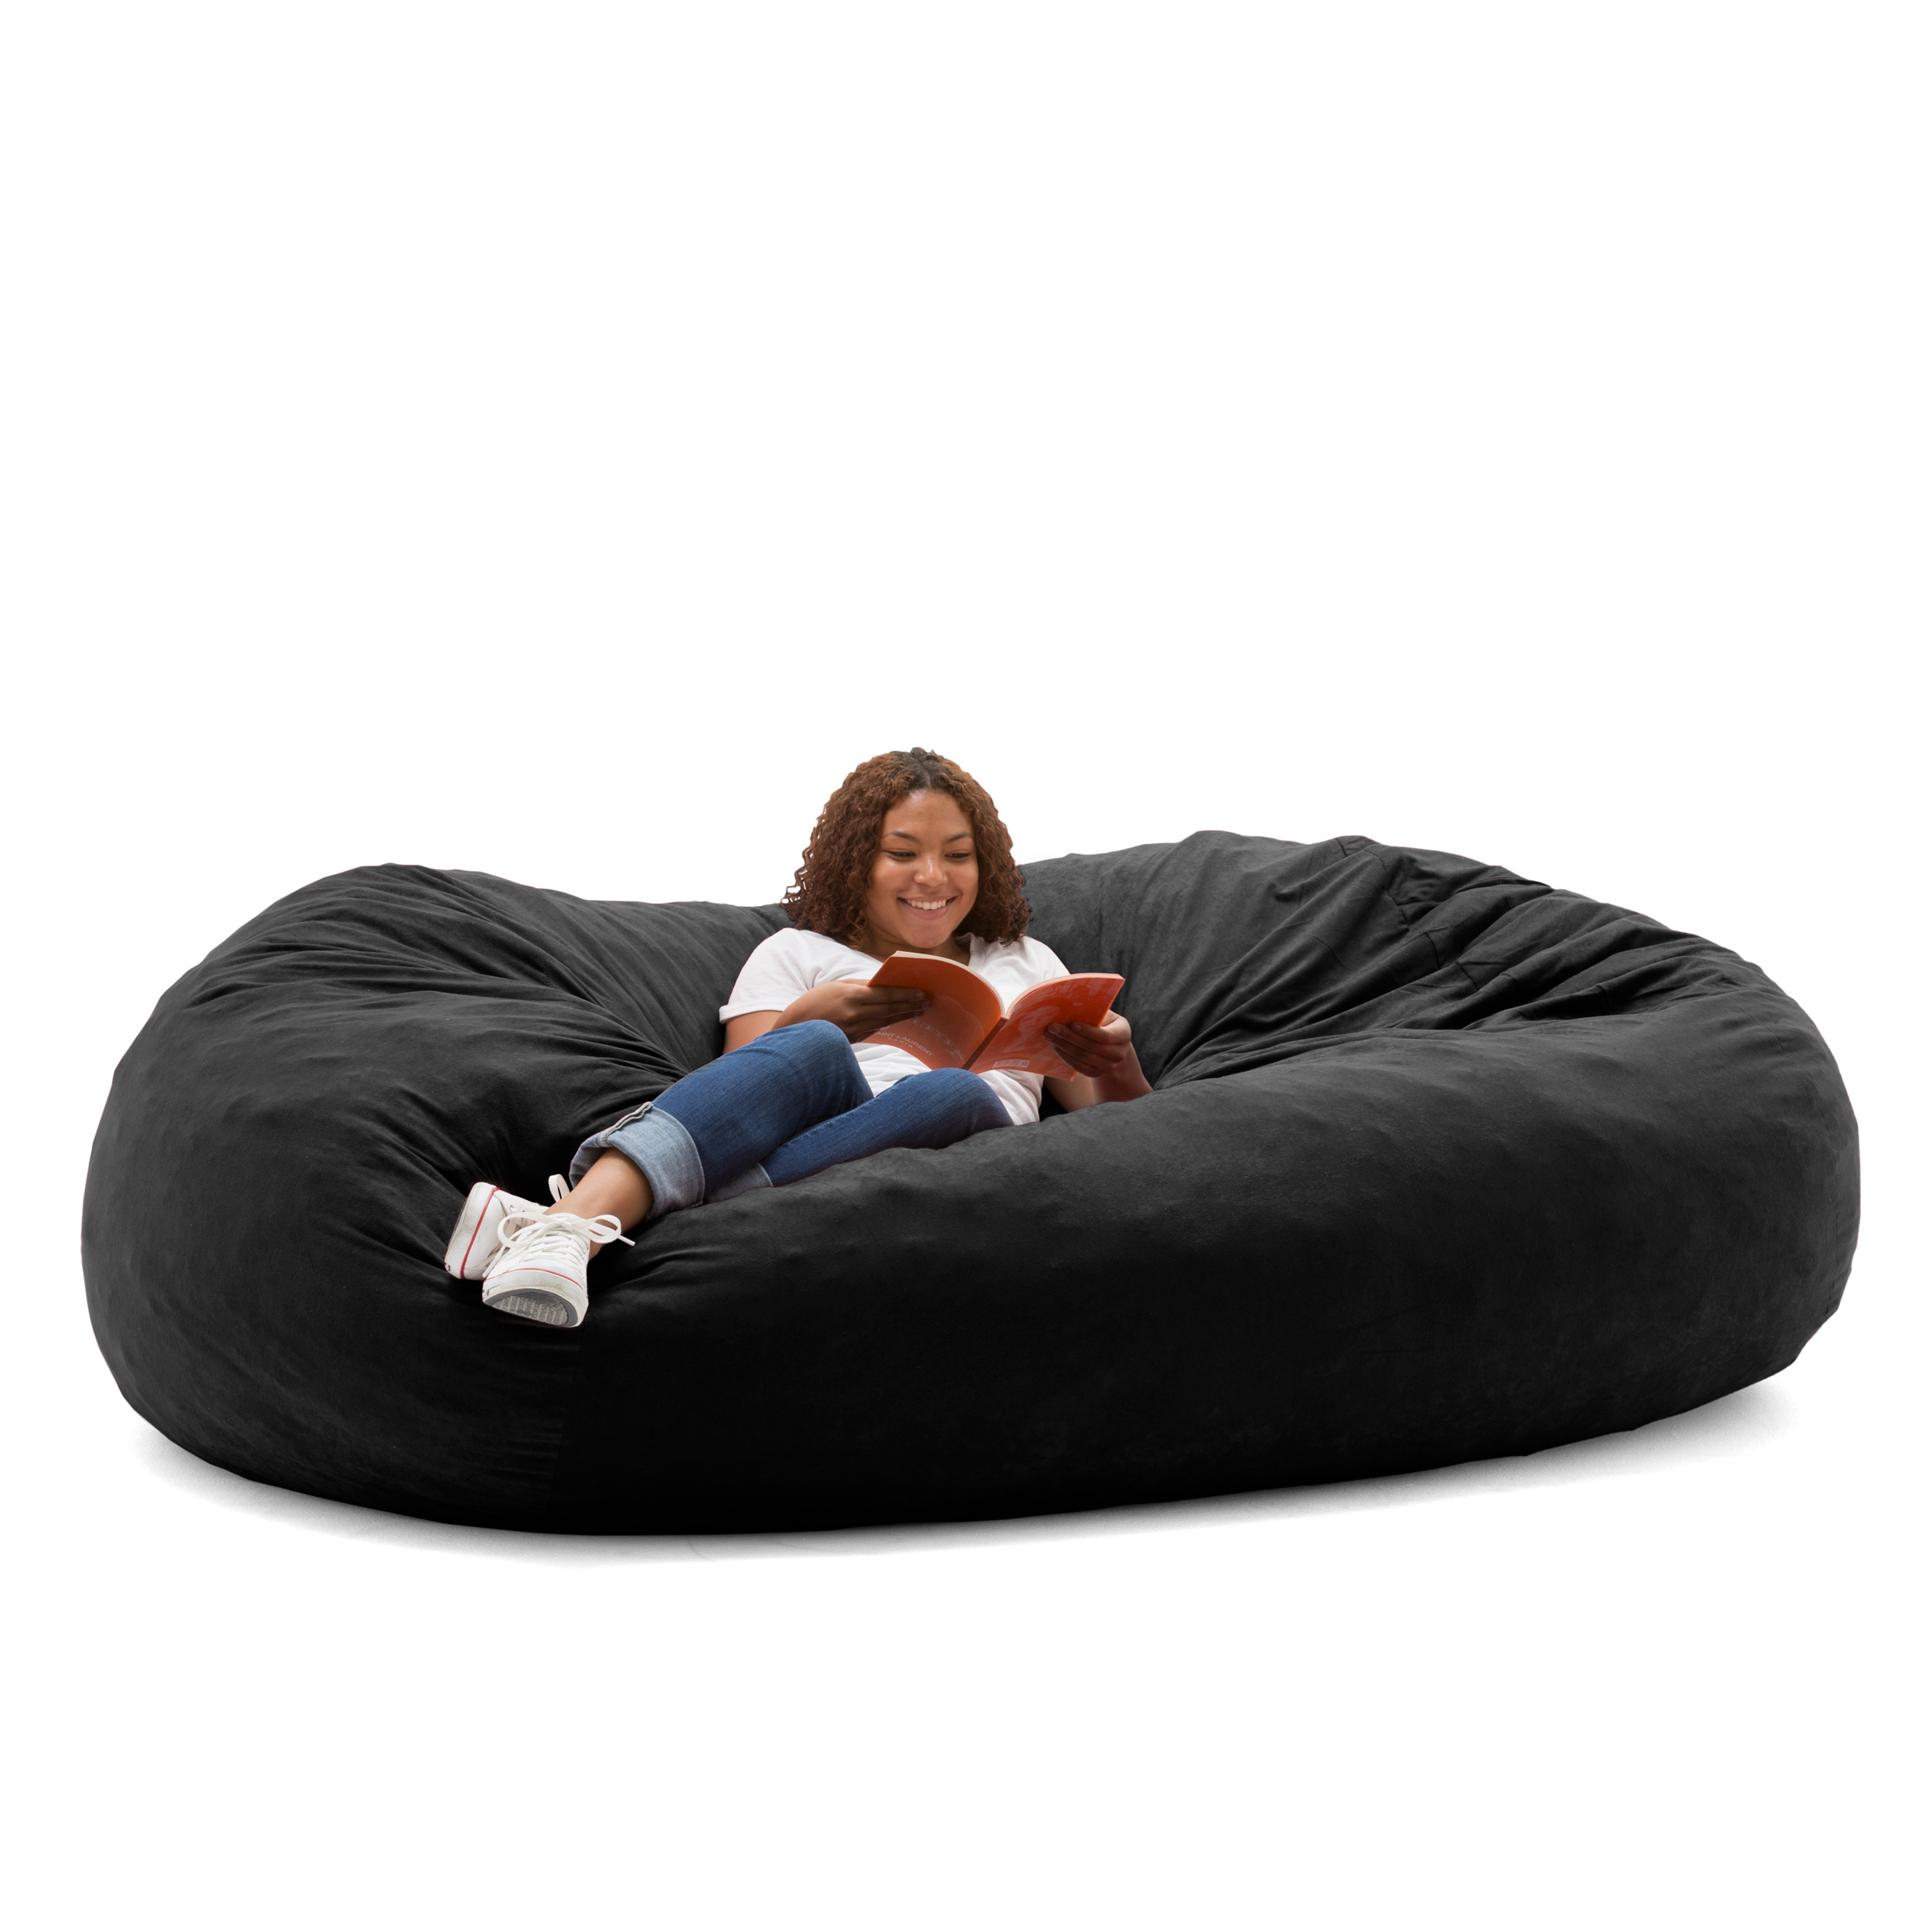 Love Sac Bean Bag Chair Big Joe Xxl 7 Fuf Bean Bag Chair Multiple Colors Fabrics